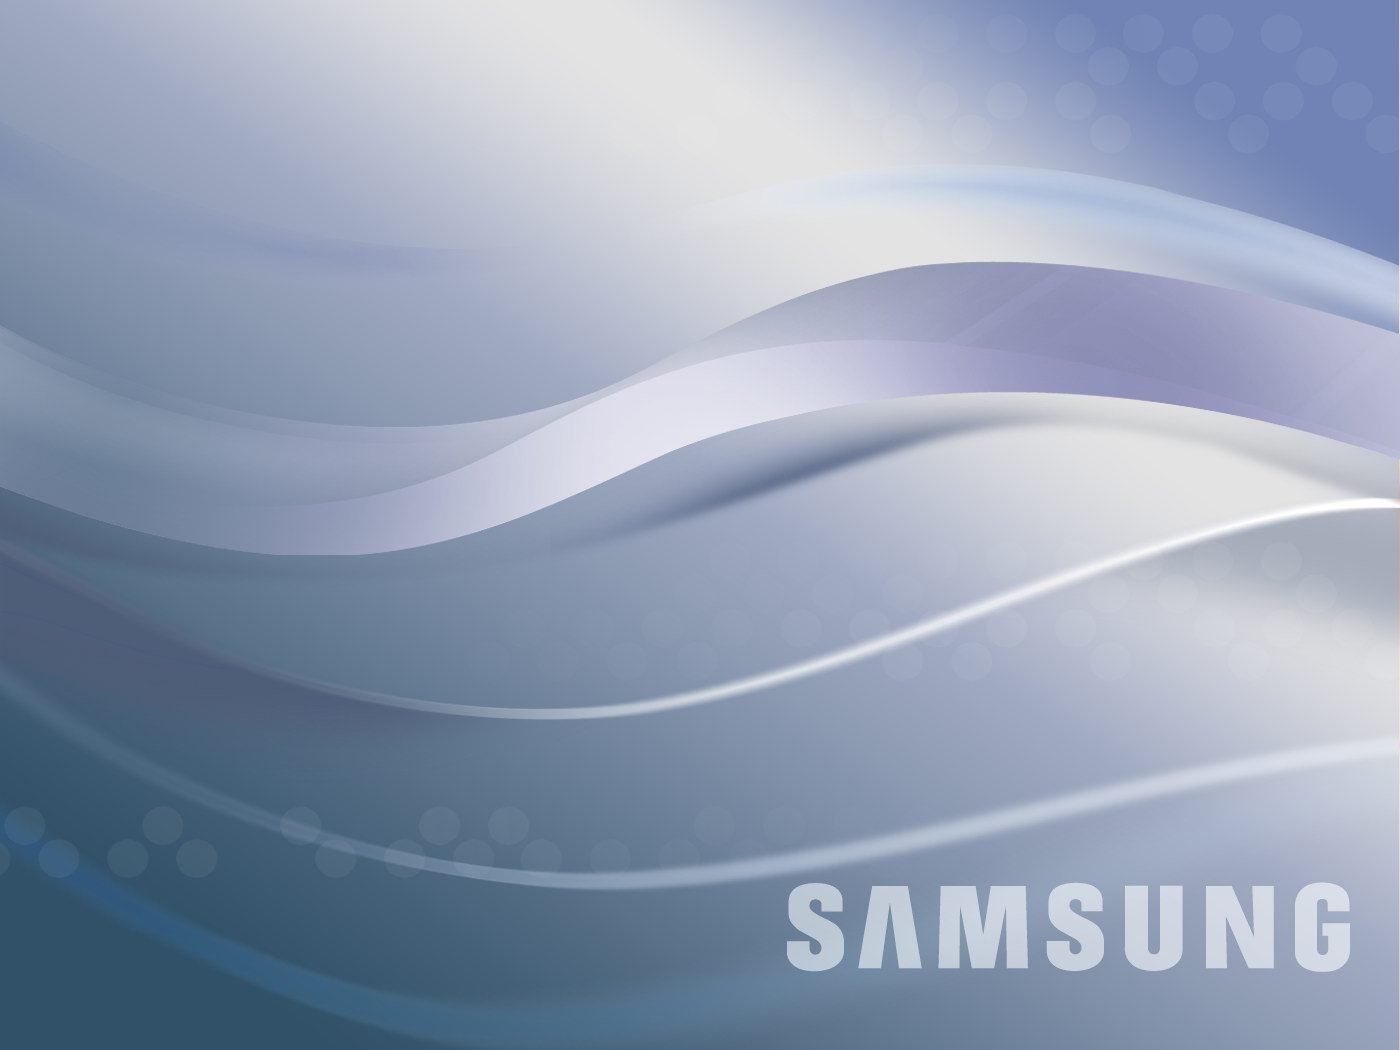 Samsung E2252 Wallpaper Download Download Wallpaper 1400x1050